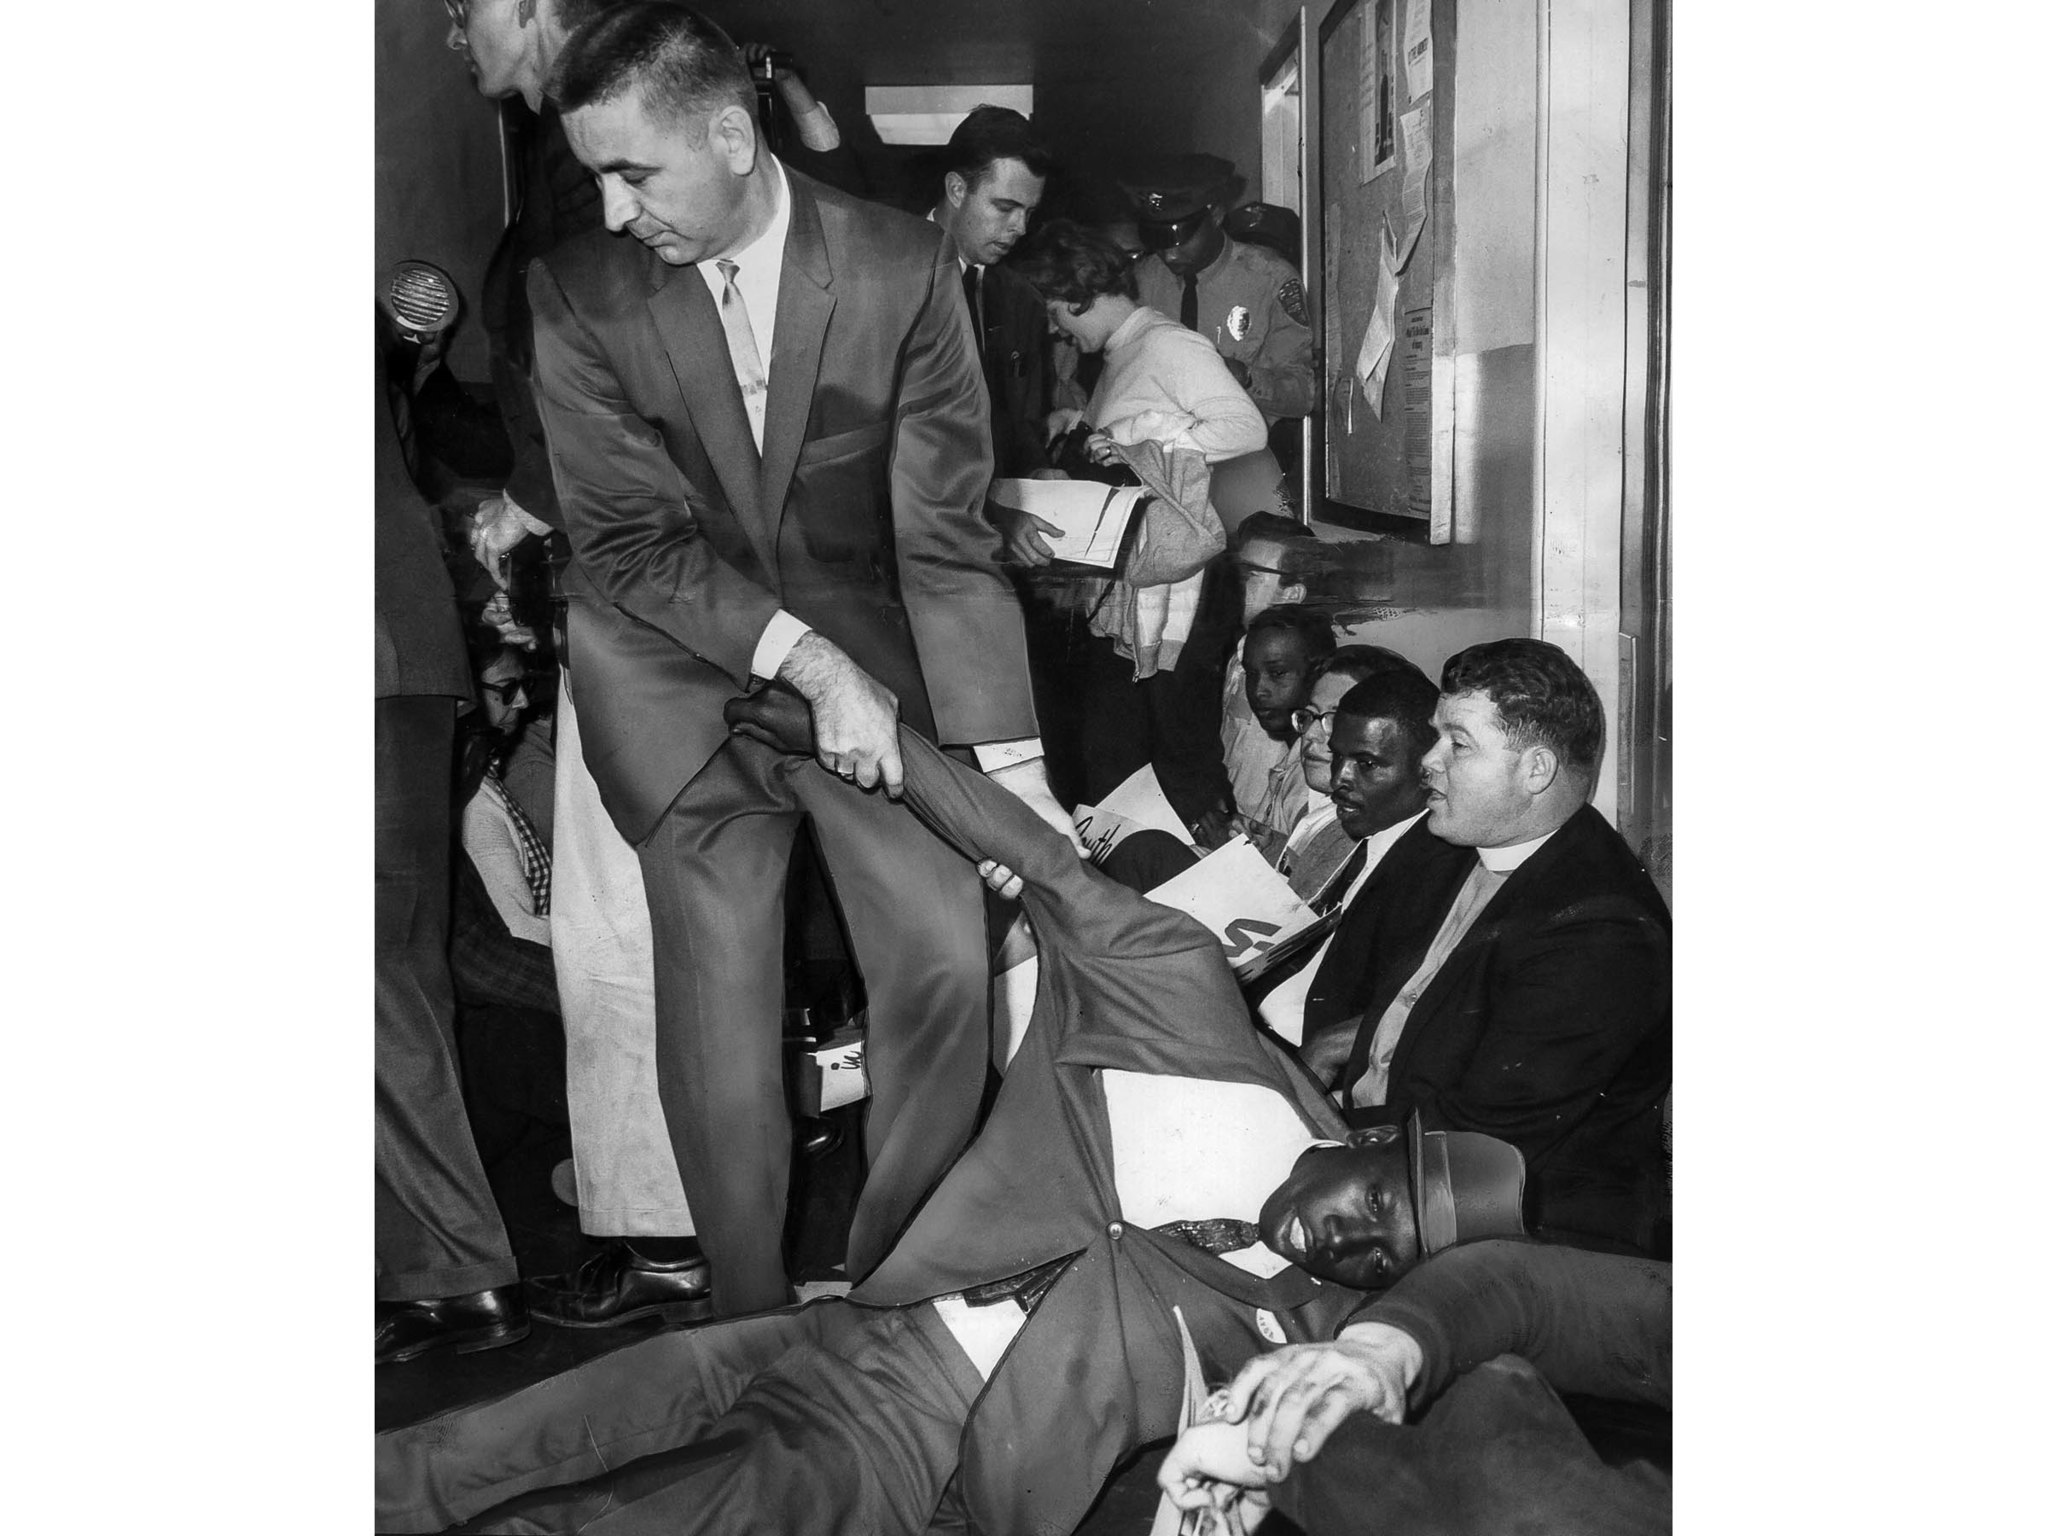 March 9, 1965: Sit-in protesters being removed from hallway in the U.S. Attorney General's office in